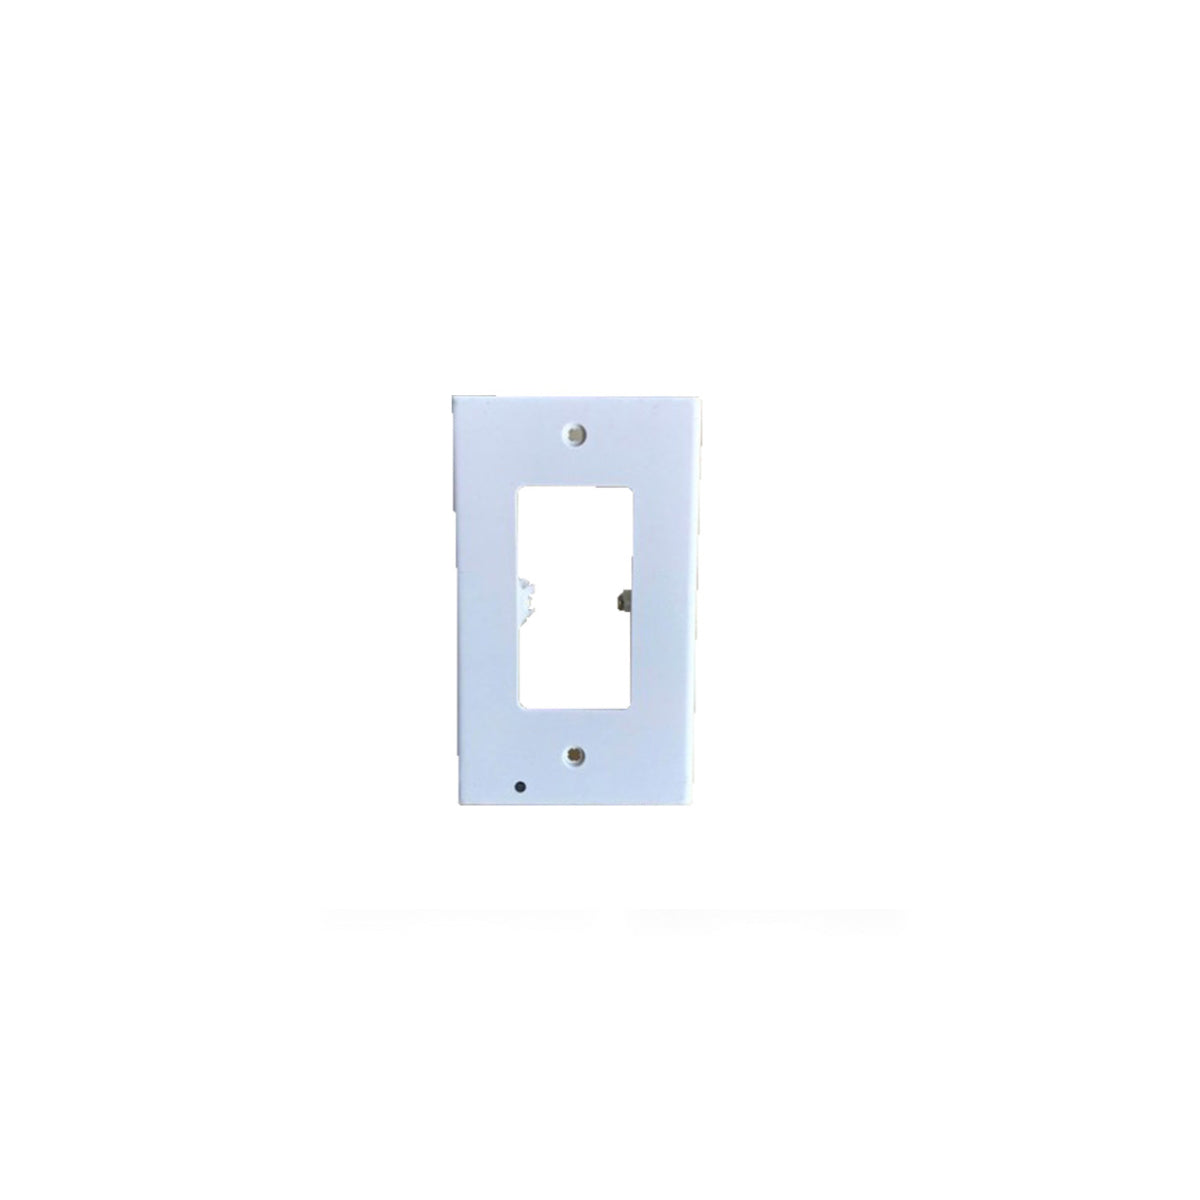 shopify-Path Lighter Auto Motion Wall Plate LED Light  2- PACK-12